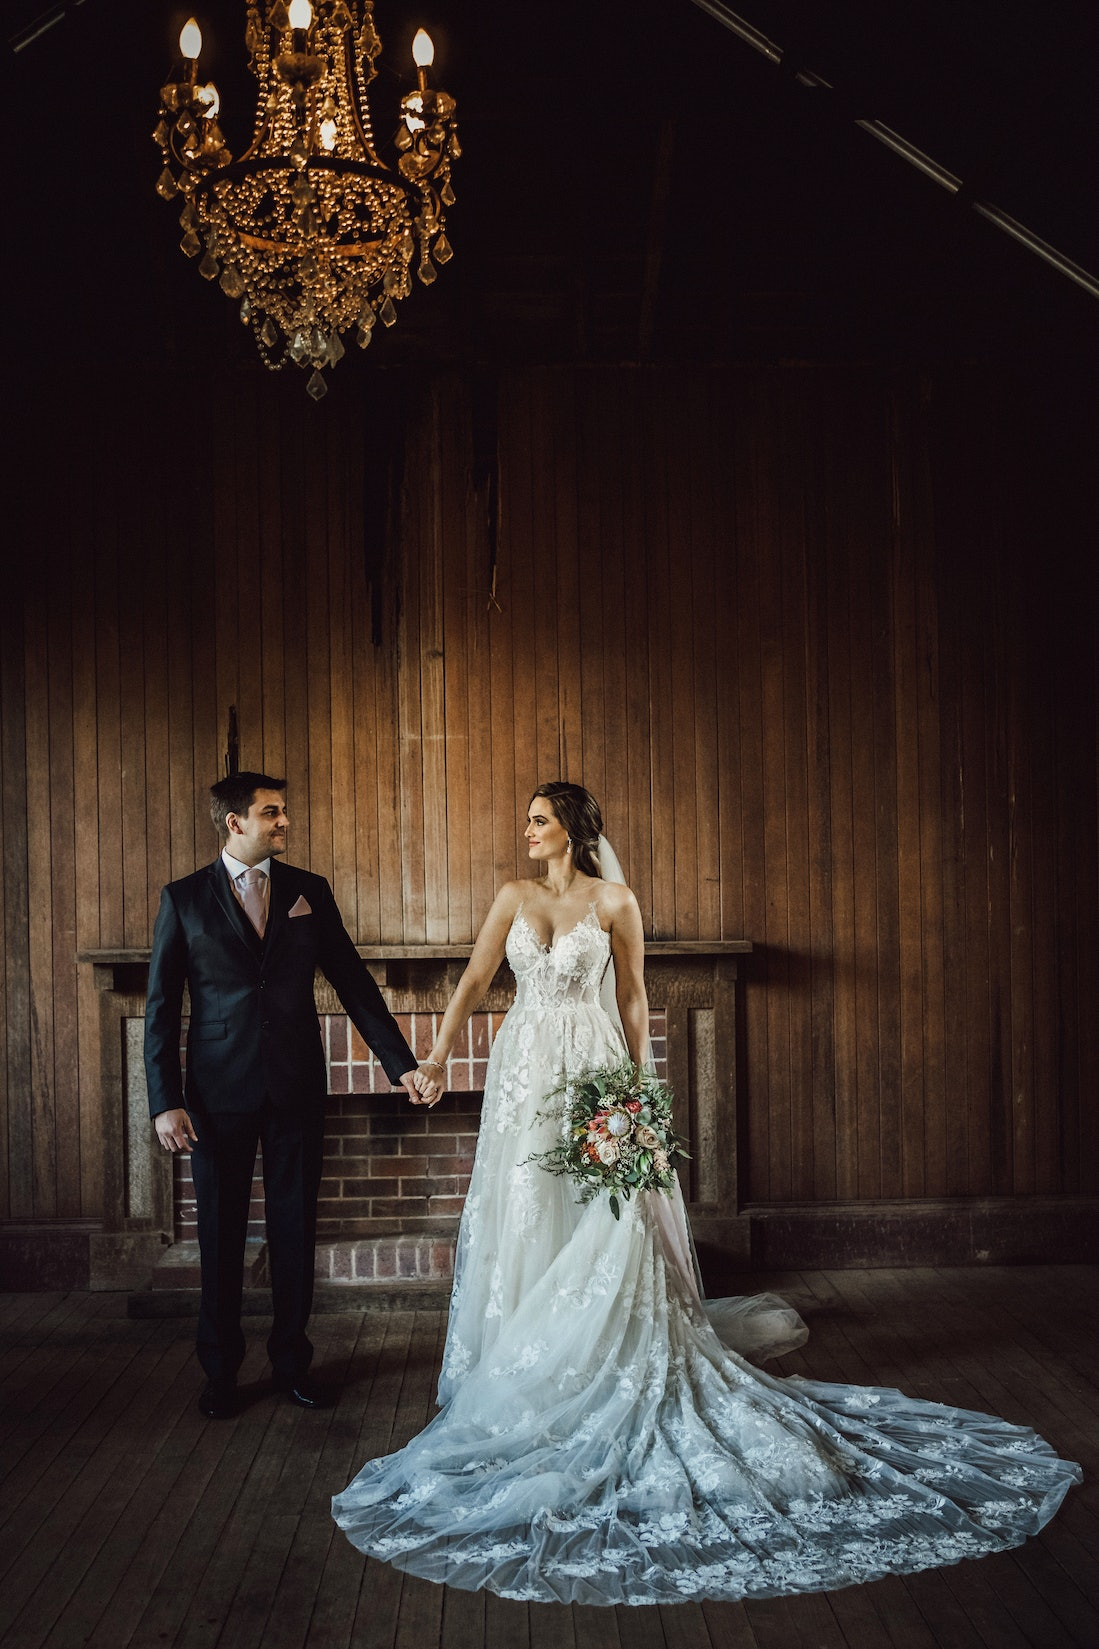 Bride and groom holding hands in old school house